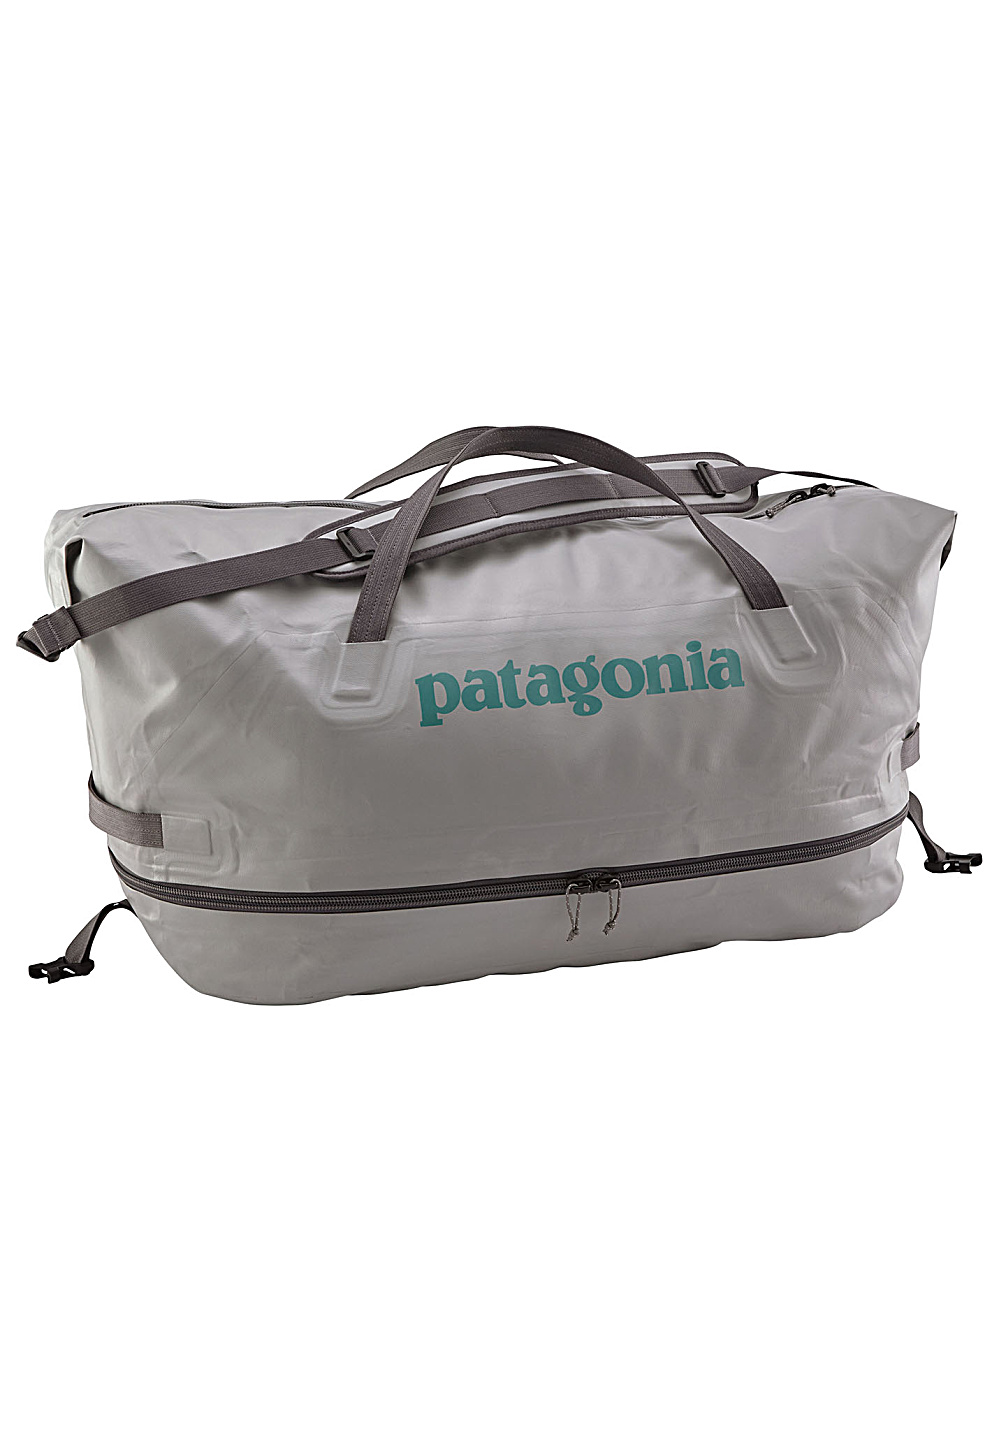 83a5a566a0c3 PATAGONIA Stormfront Wet Dry Duffel 65L - Gym Bag - Grey - Planet Sports